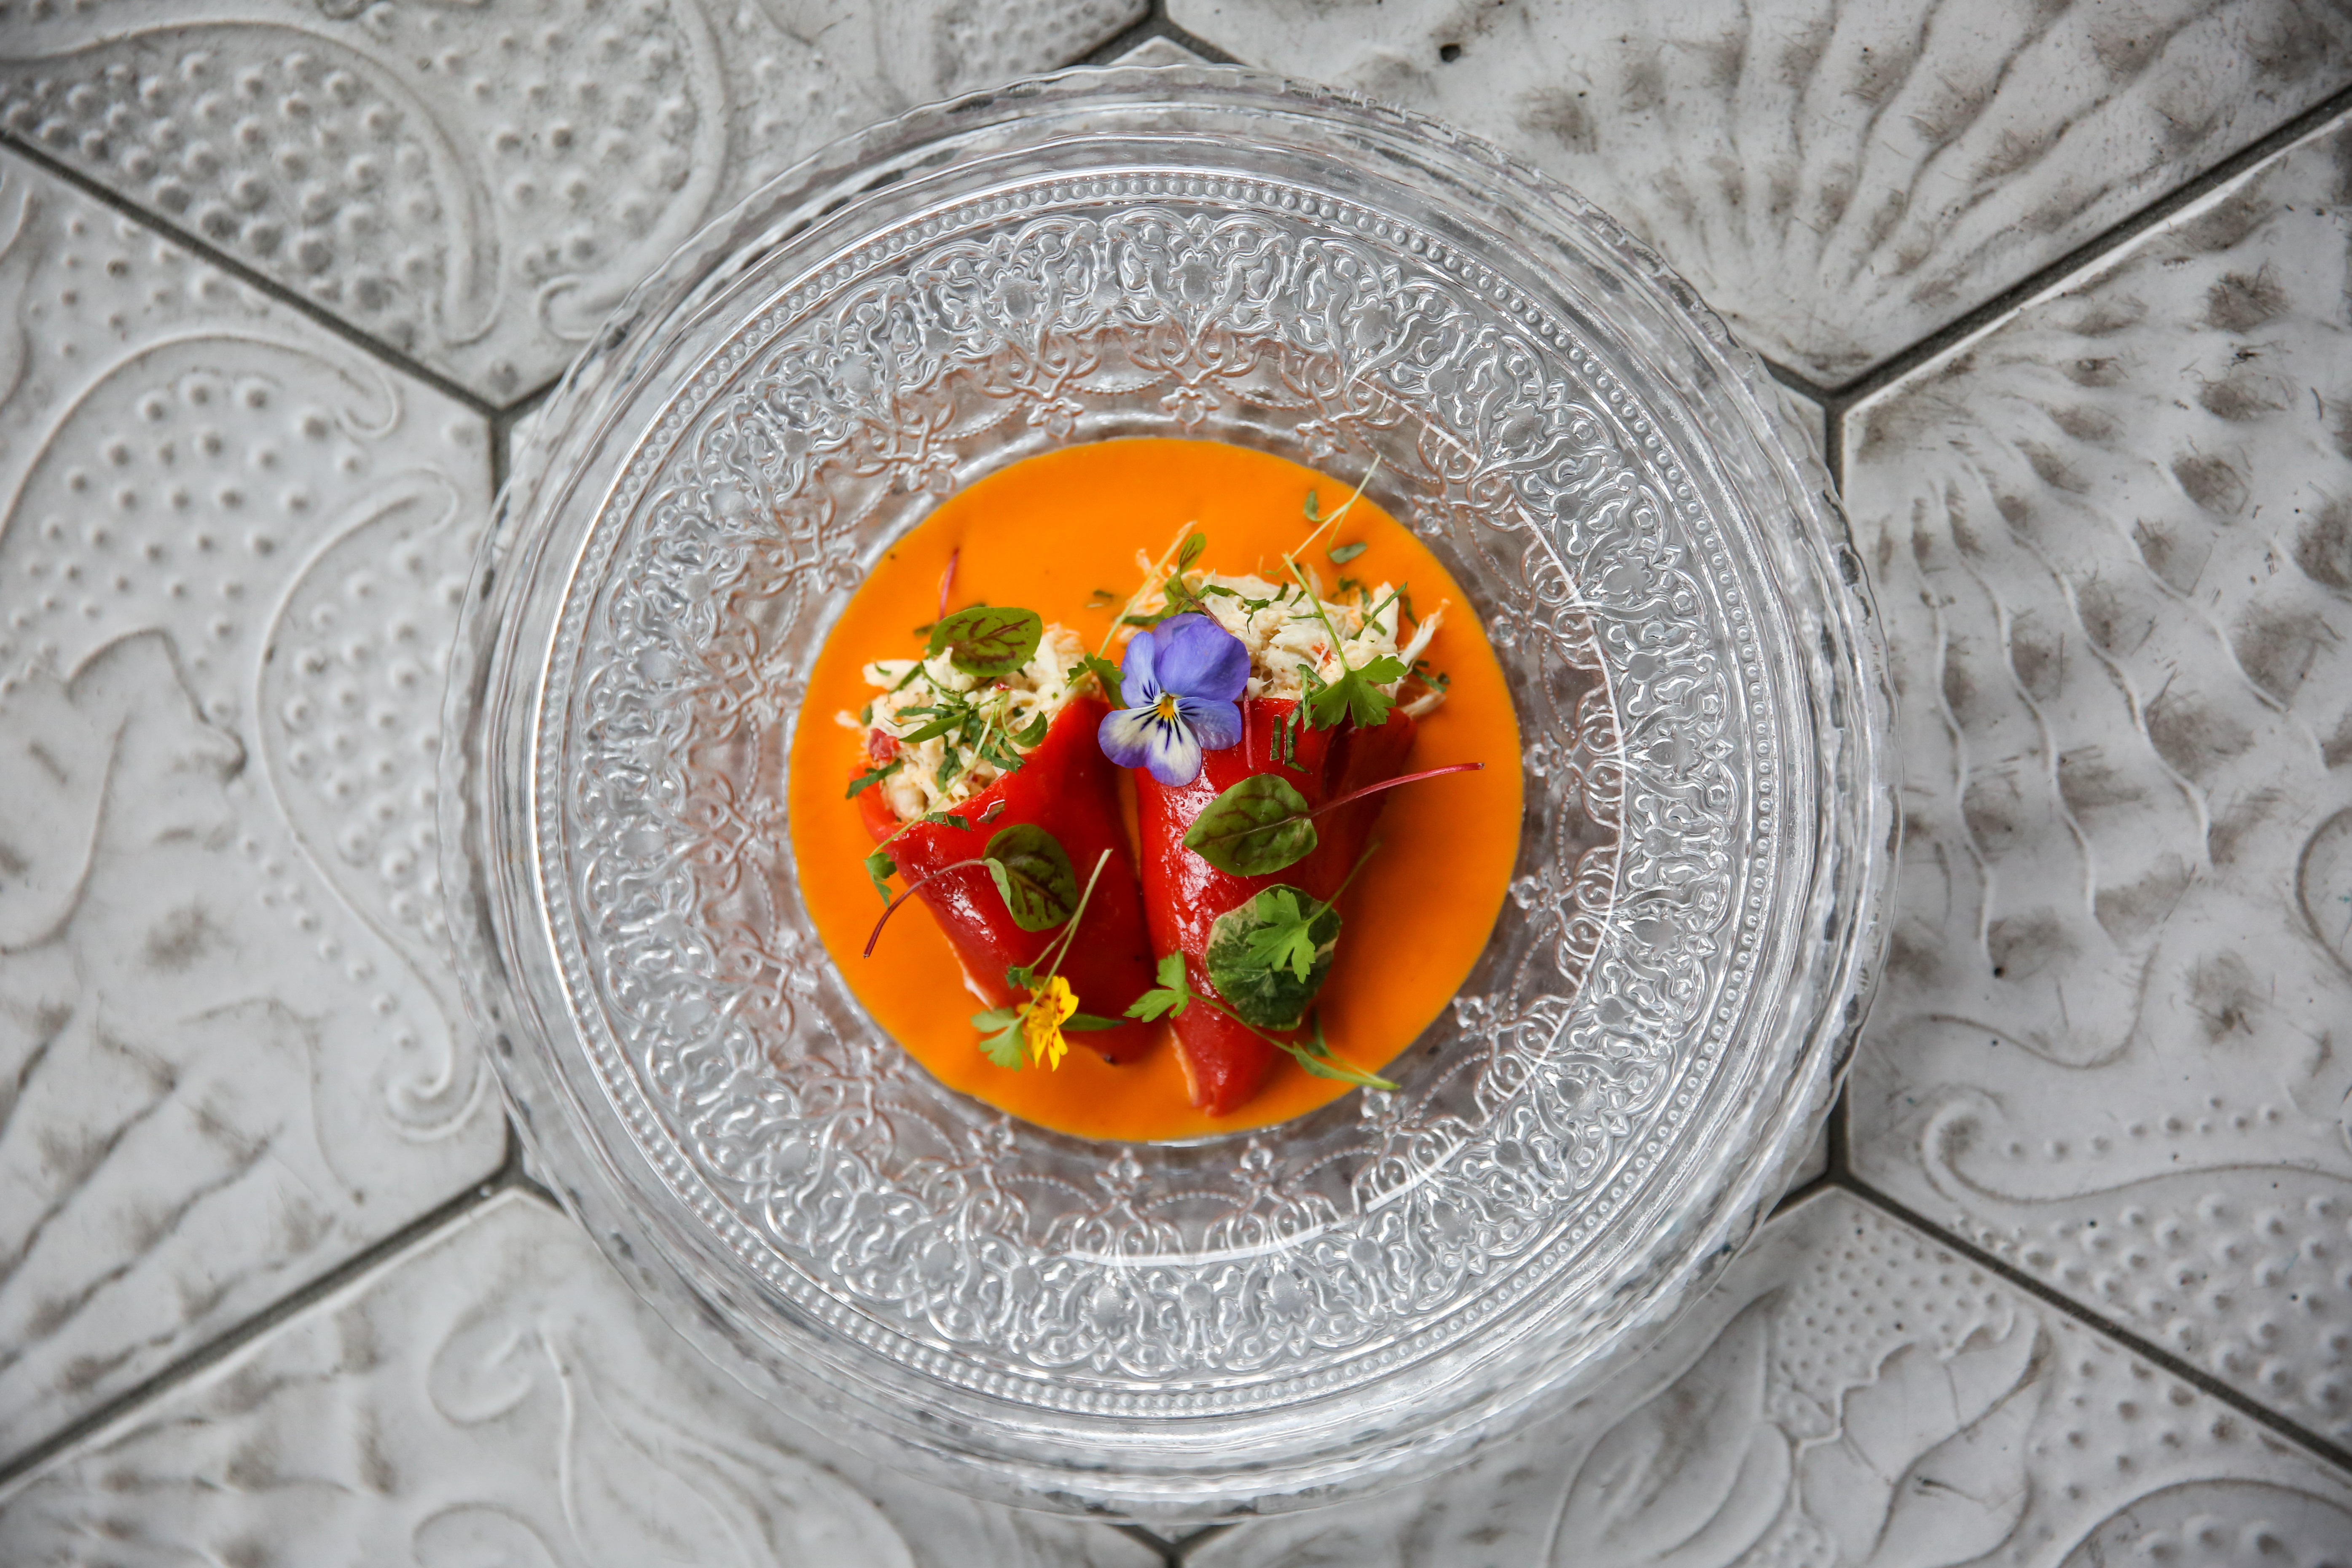 Fabio and Maria Trabocchi also picked up three nominations for their various restaurants: Fiola Mare for Fine Dining Restaurant of the Year; Sfoglina for Upscale Brunch of the Year; and Del Mar for New Restaurant of the Year. (Image: Amanda Andrade-Rhoades/ DC Refined)